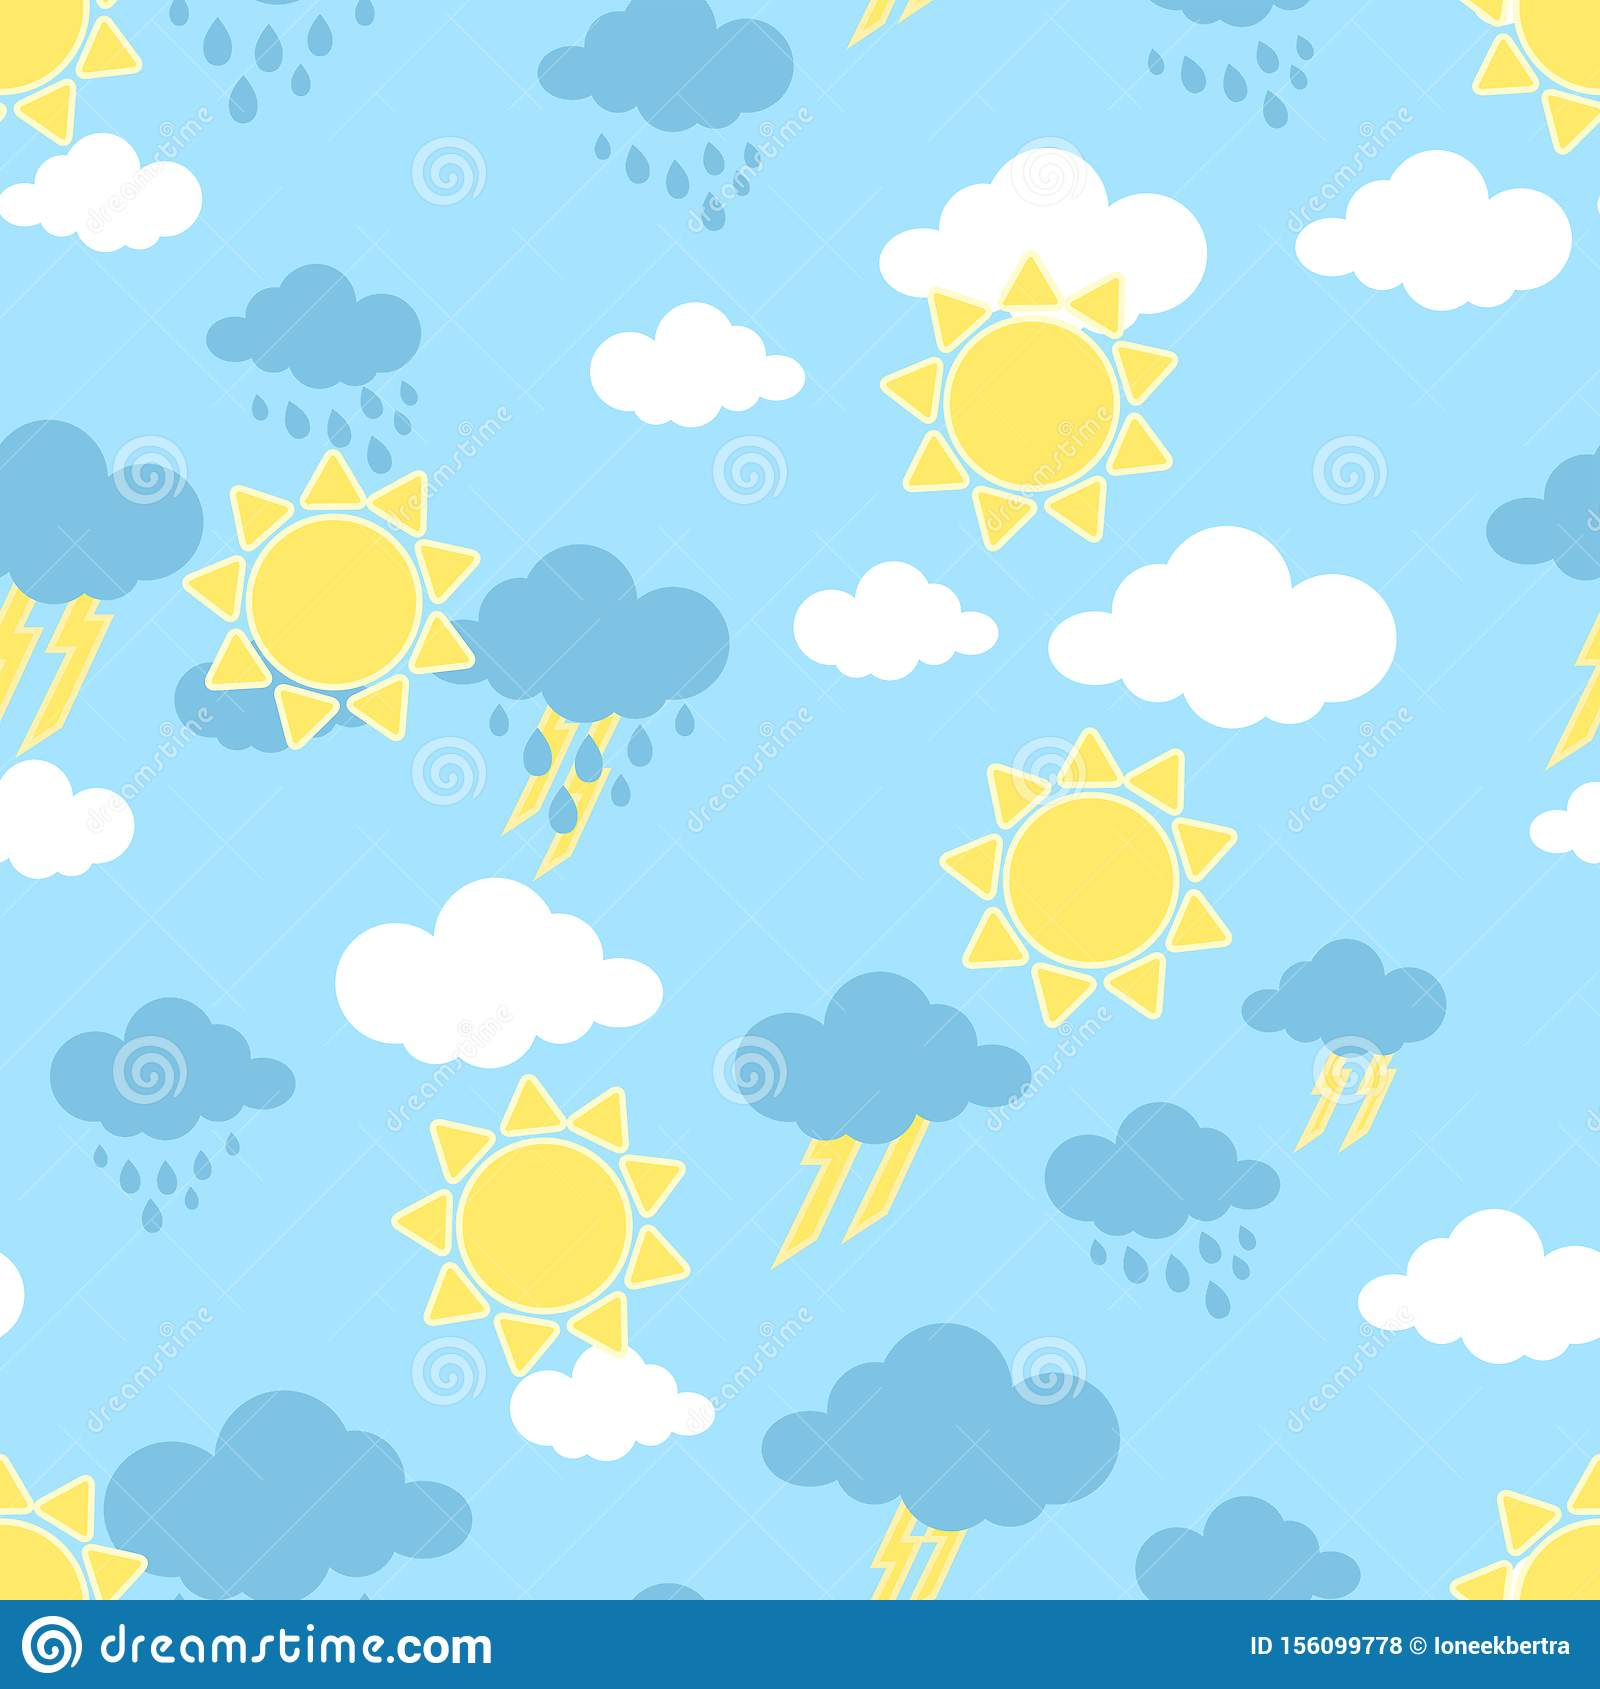 Seamless pattern with sun. clouds, rain and rainbow . Wallpaper for children room. Weather background